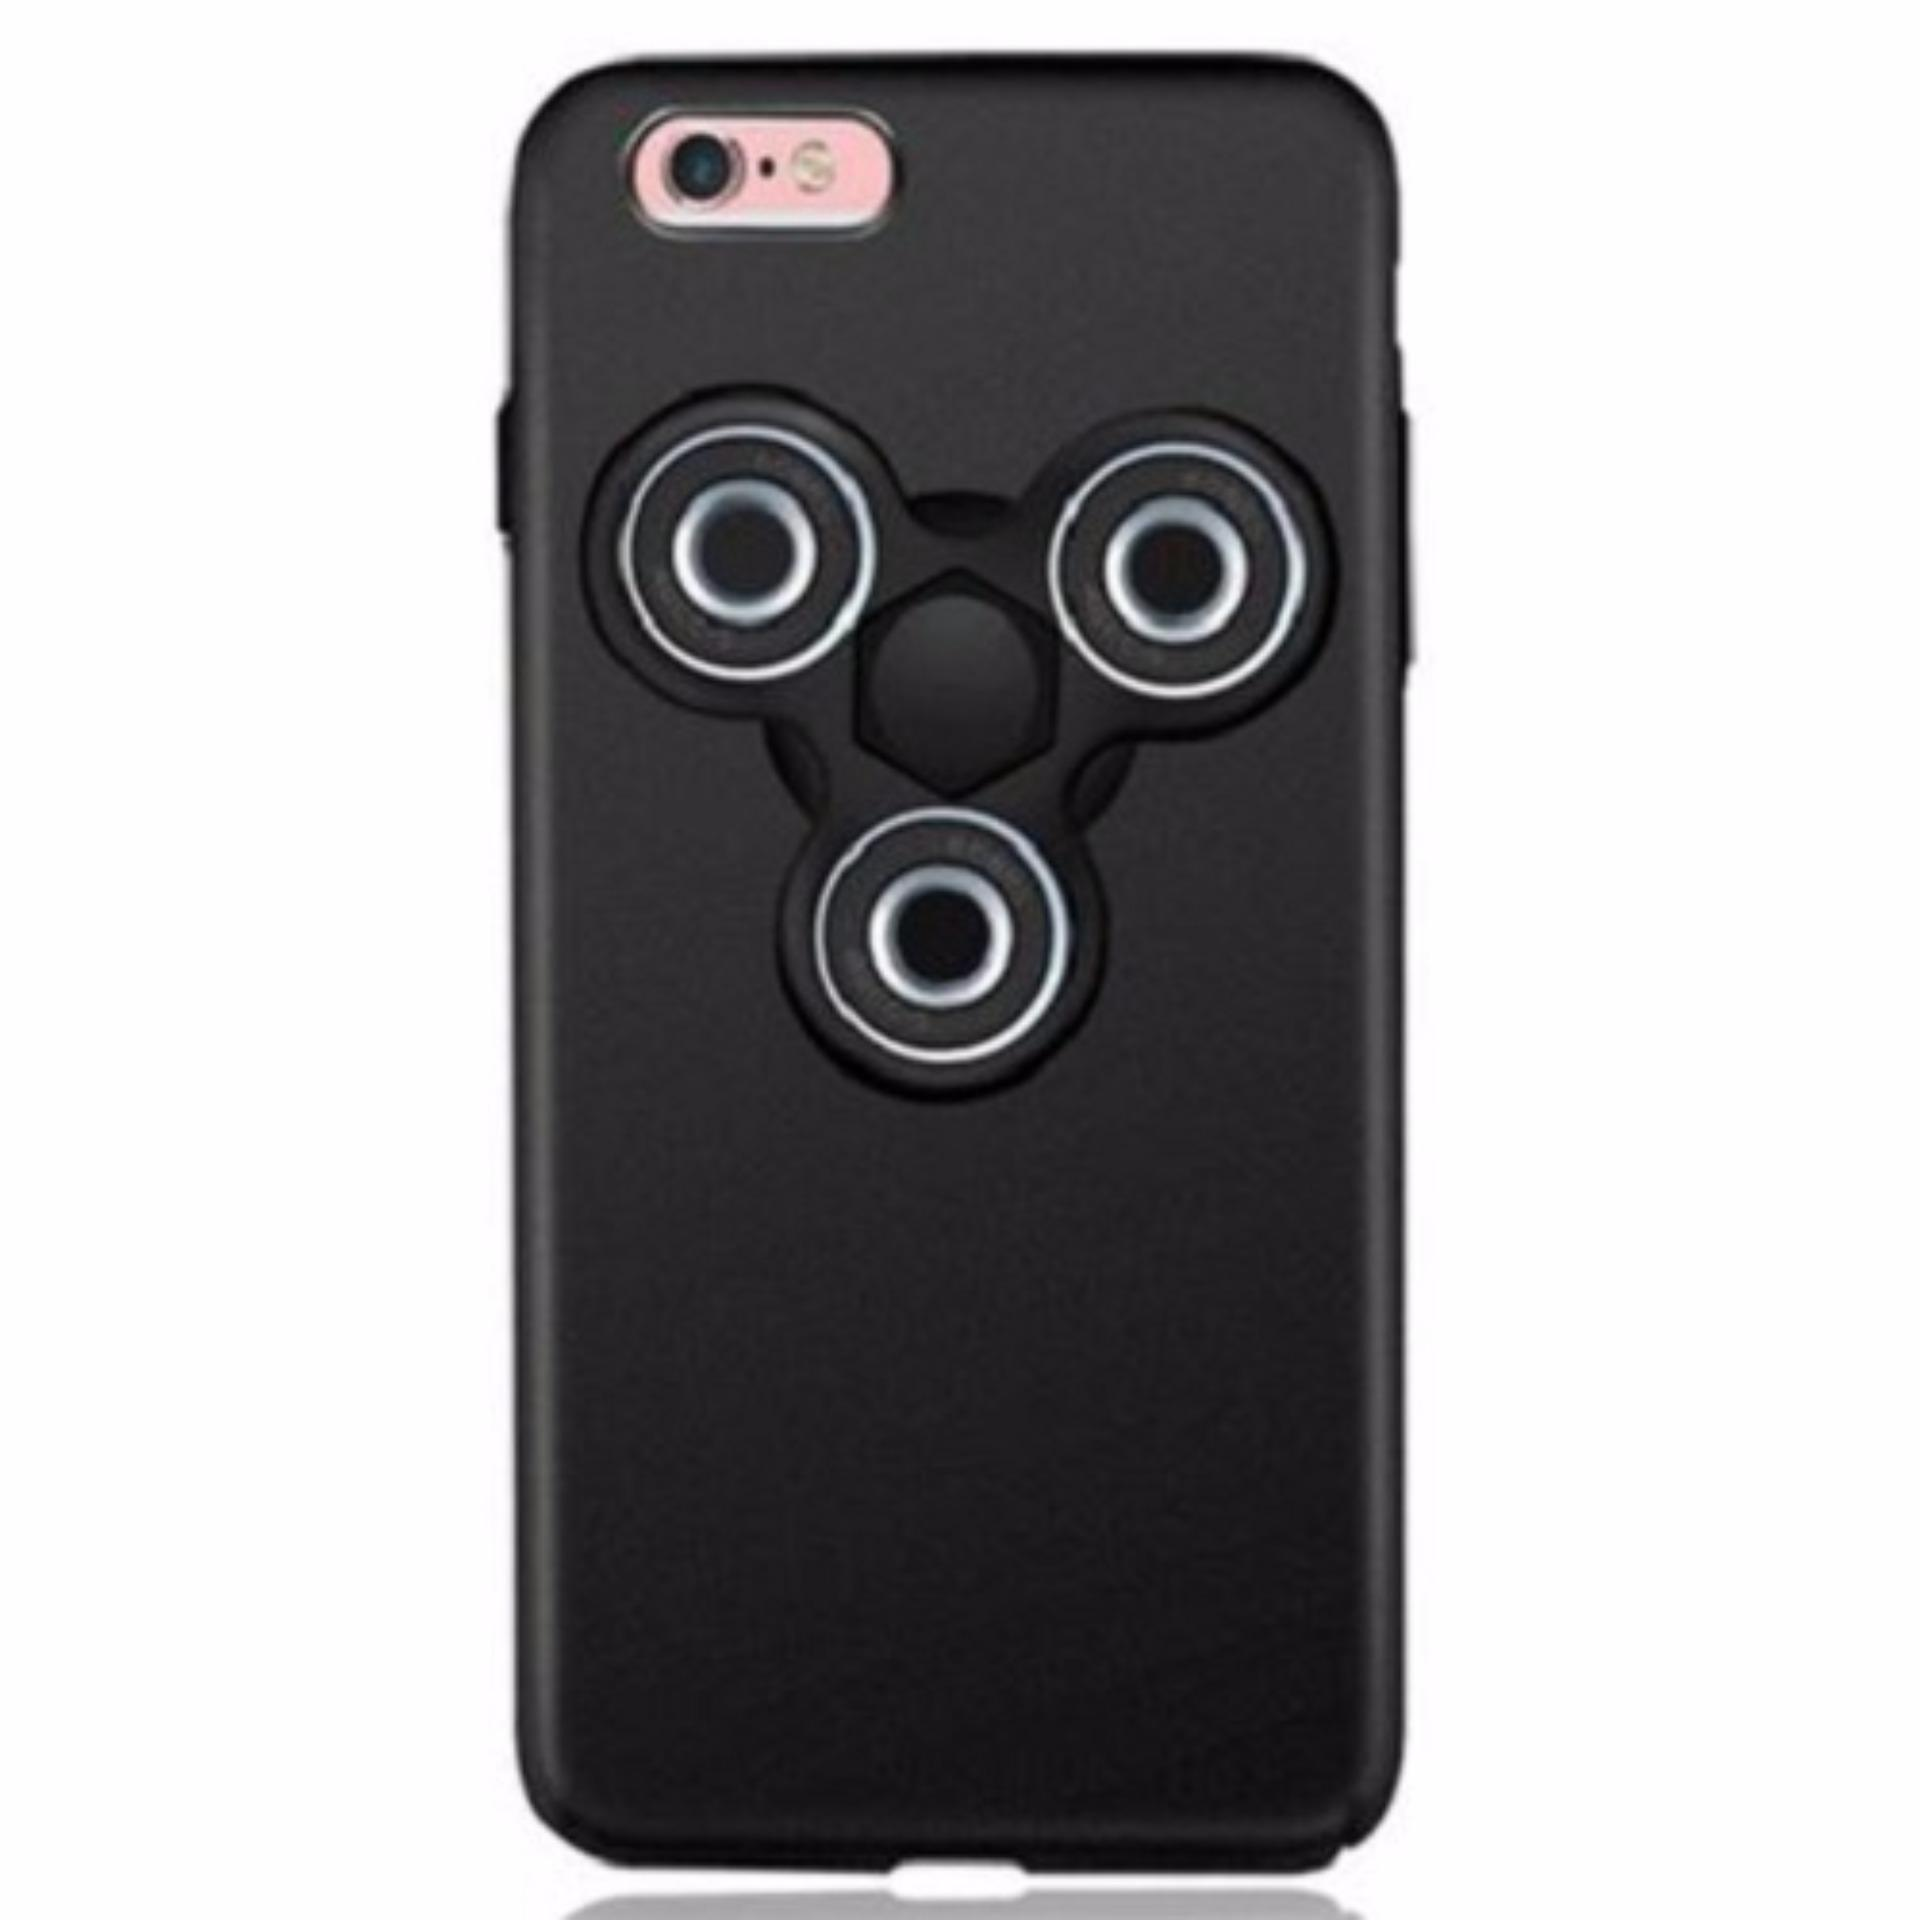 Jual Fidget Spinner Smartphone Case For Iphone 6 6S Plus Black Branded